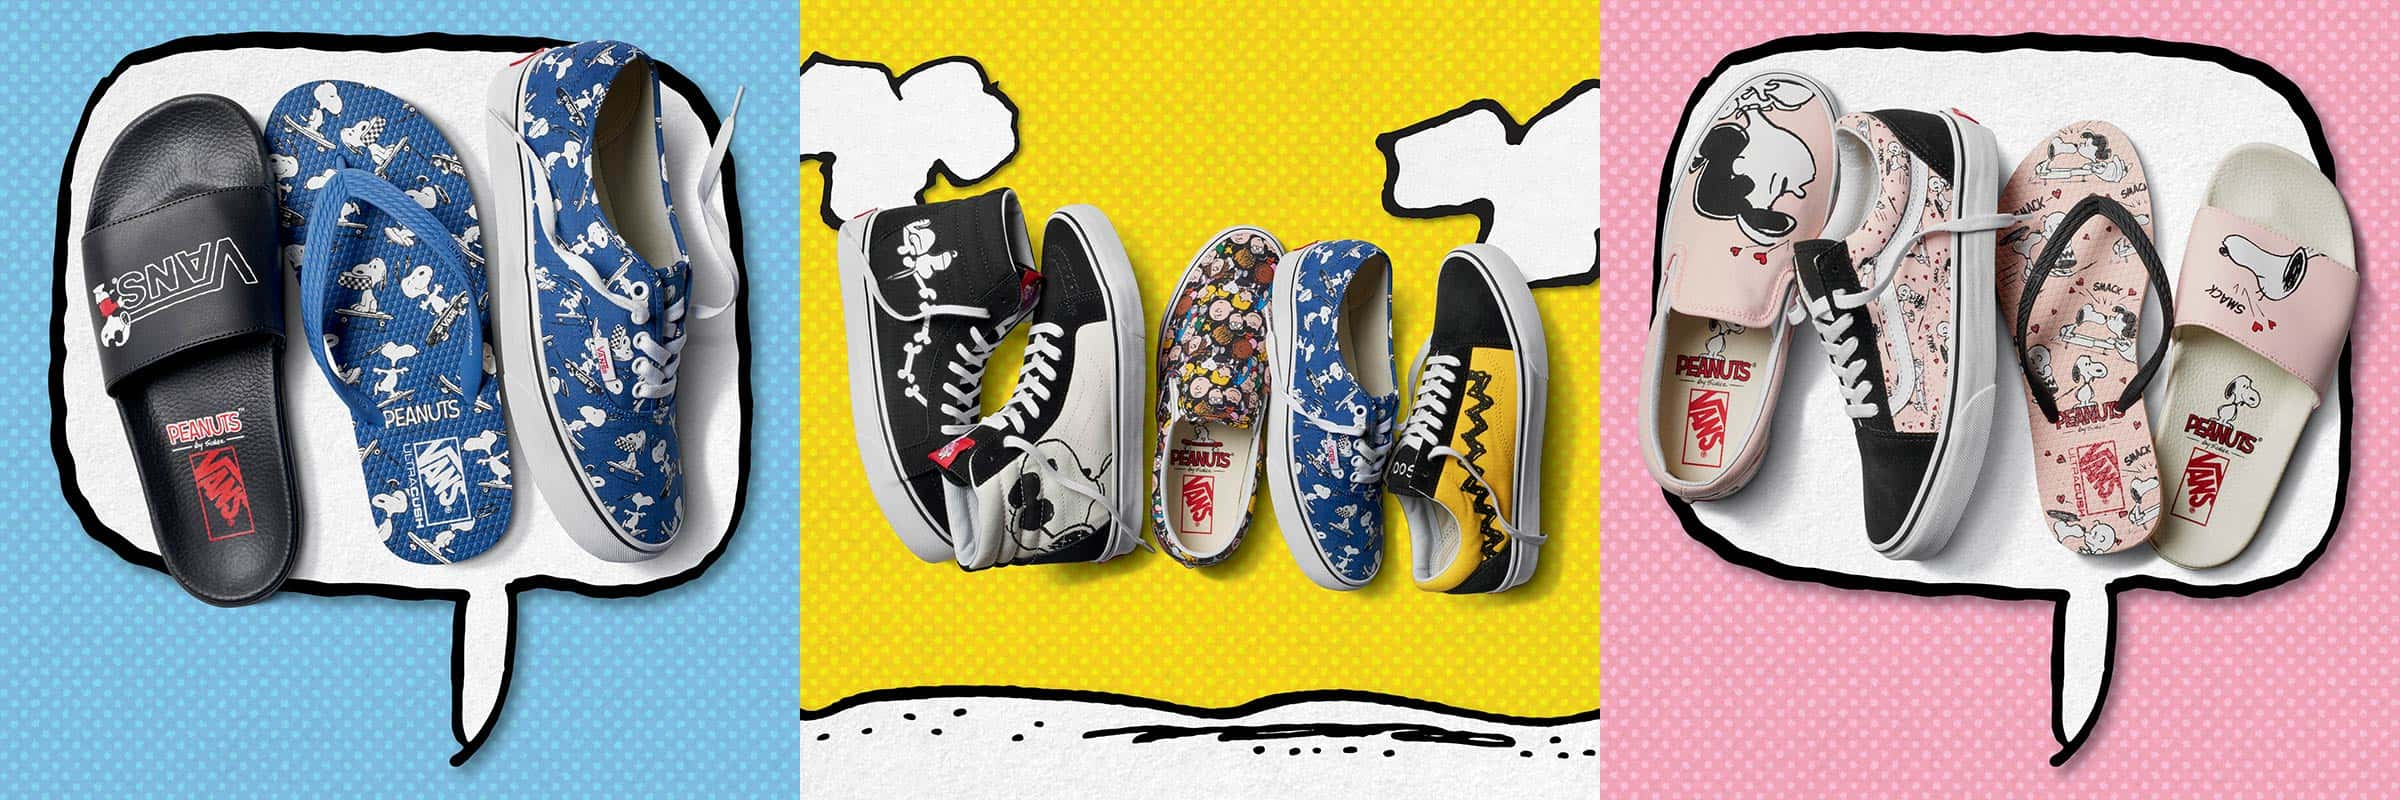 Discover the Vans X Peanuts Collaboration - Altitude Blog eab29be4e